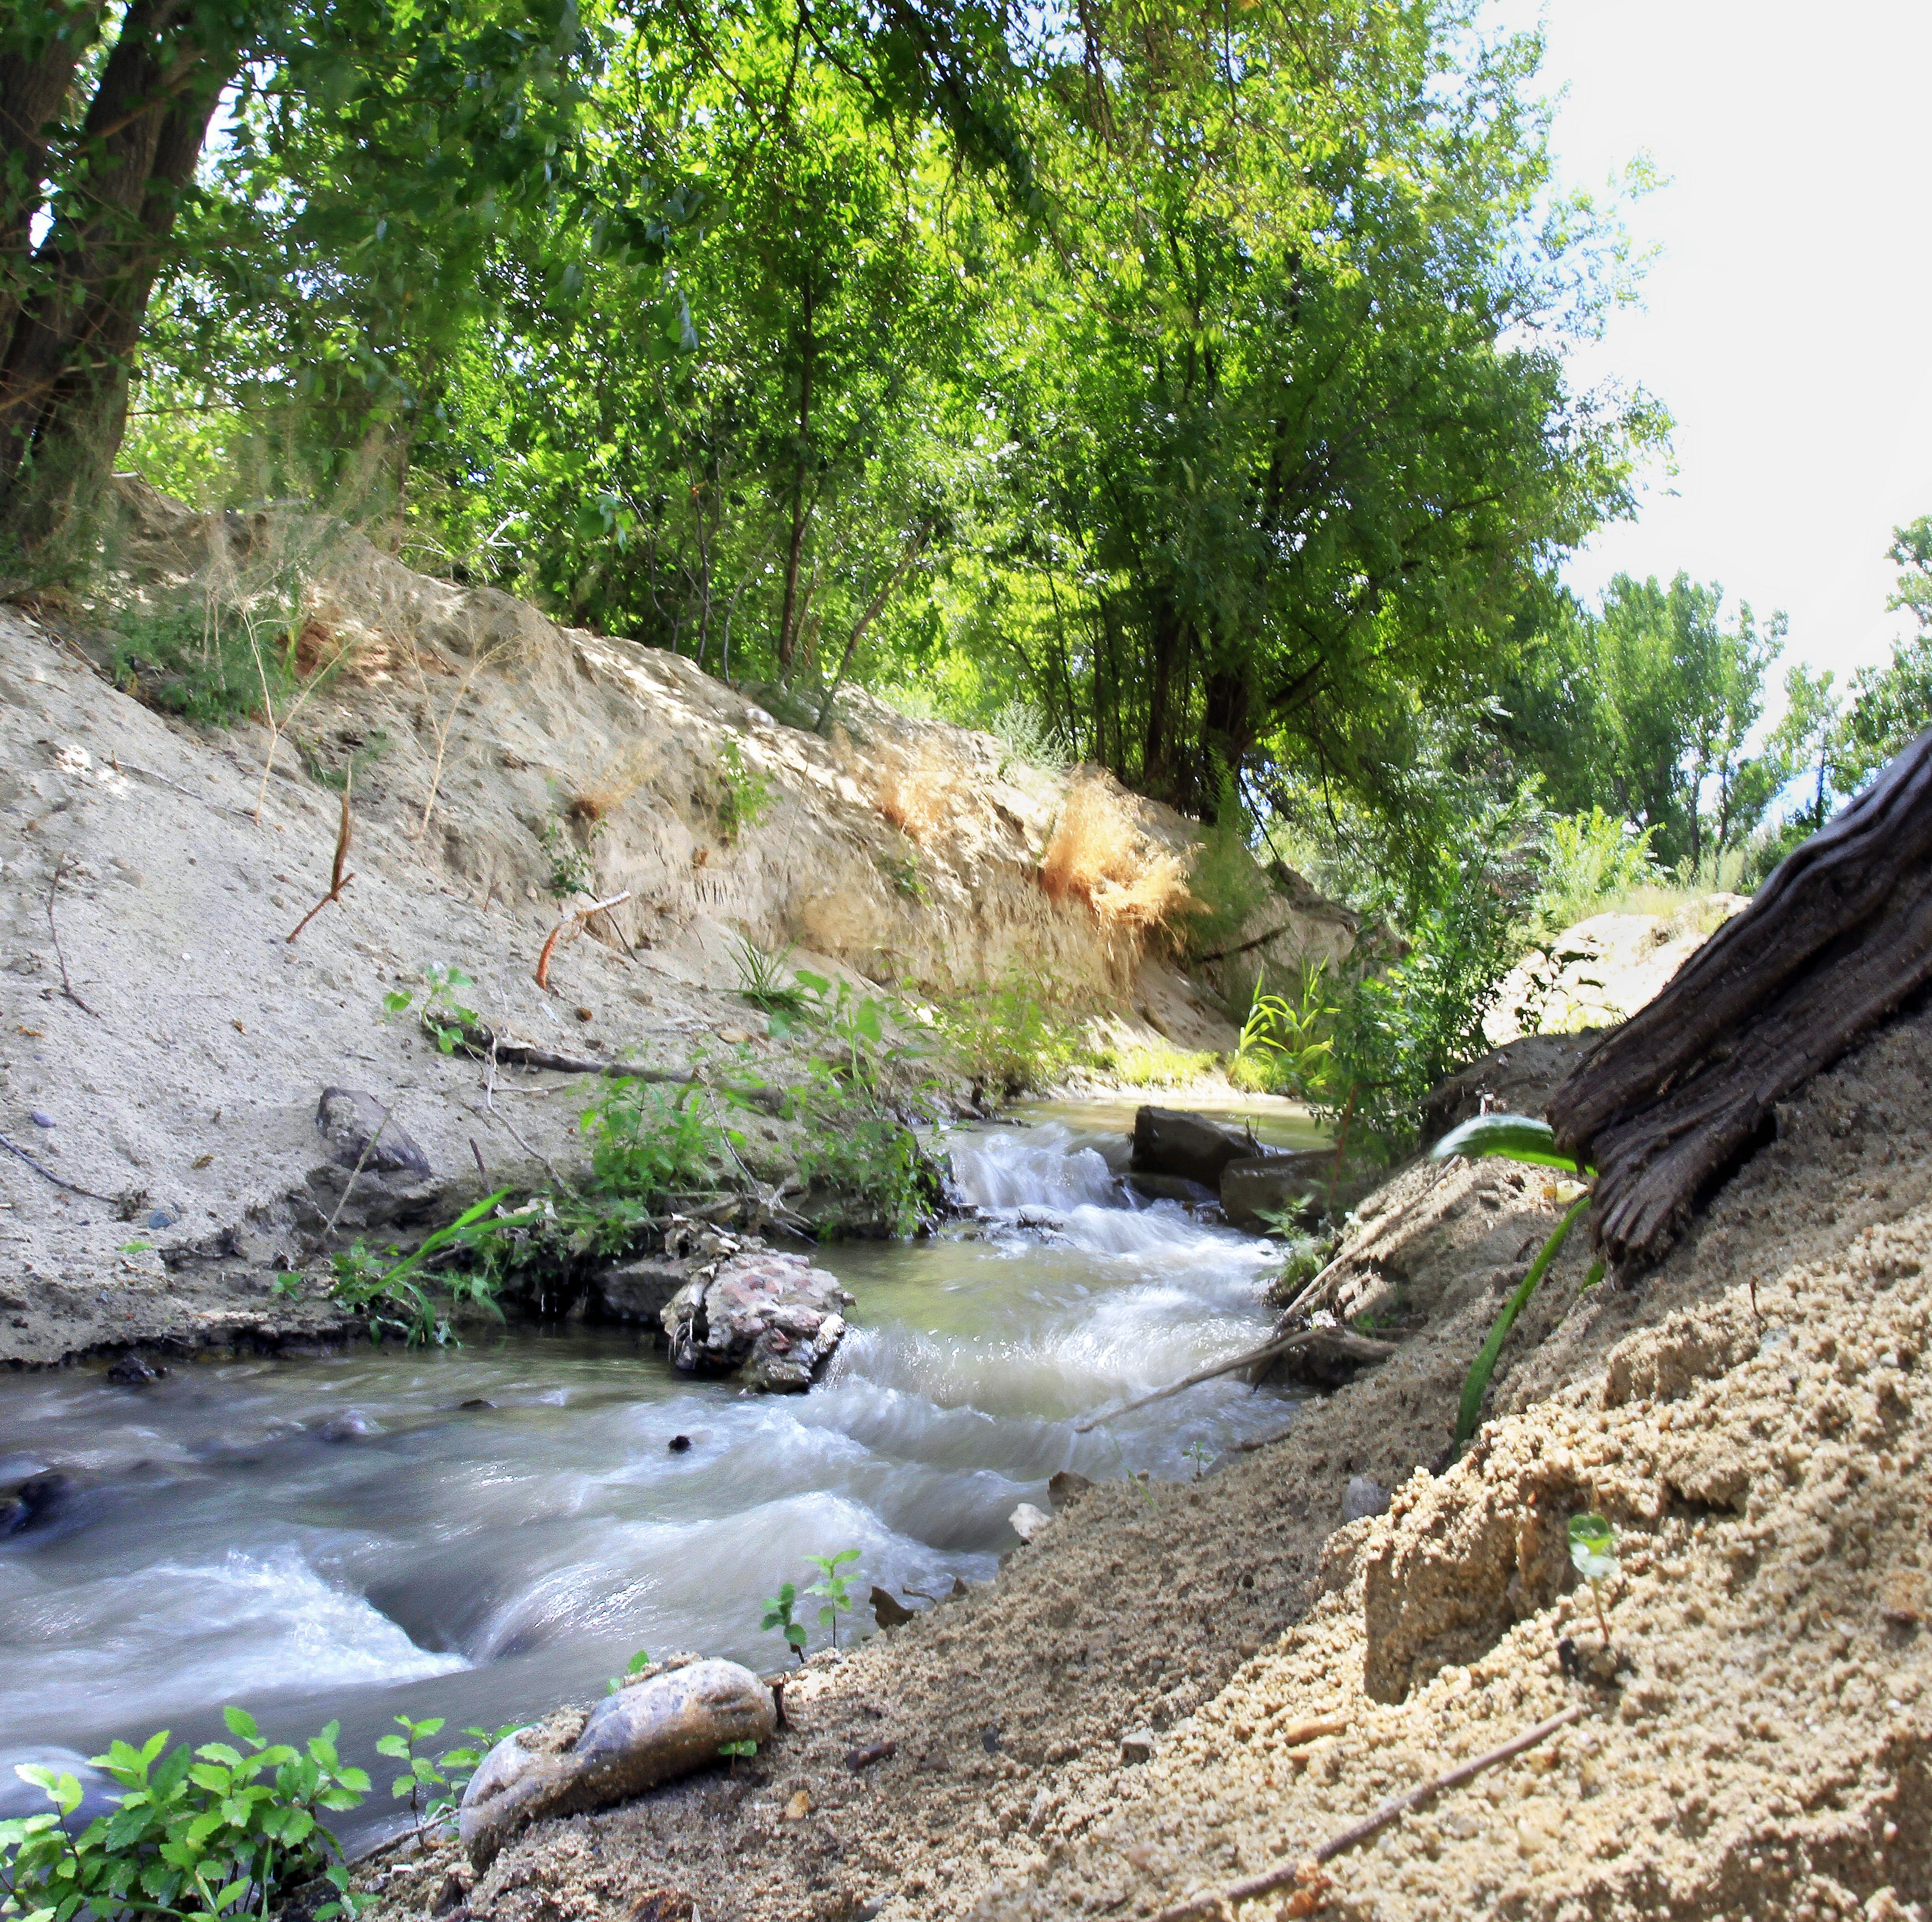 EPA proposes removing ephemeral streams from Clean Water Act jurisdiction